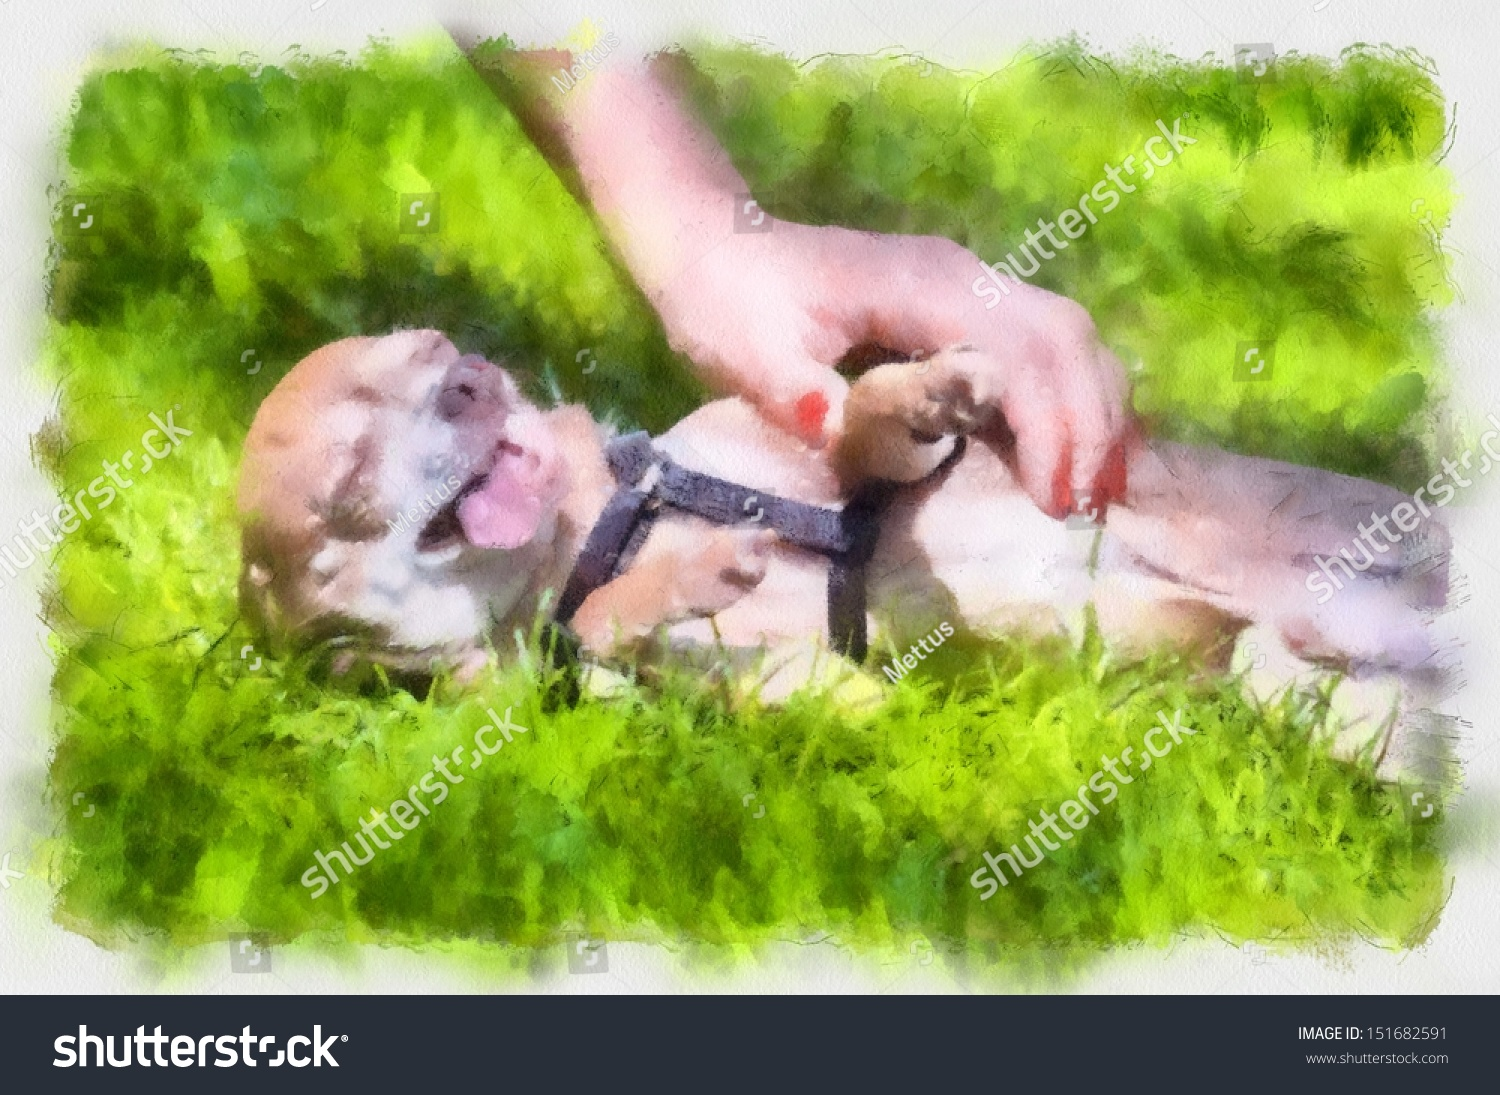 stock-photo-little-dog-in-grass-watercol